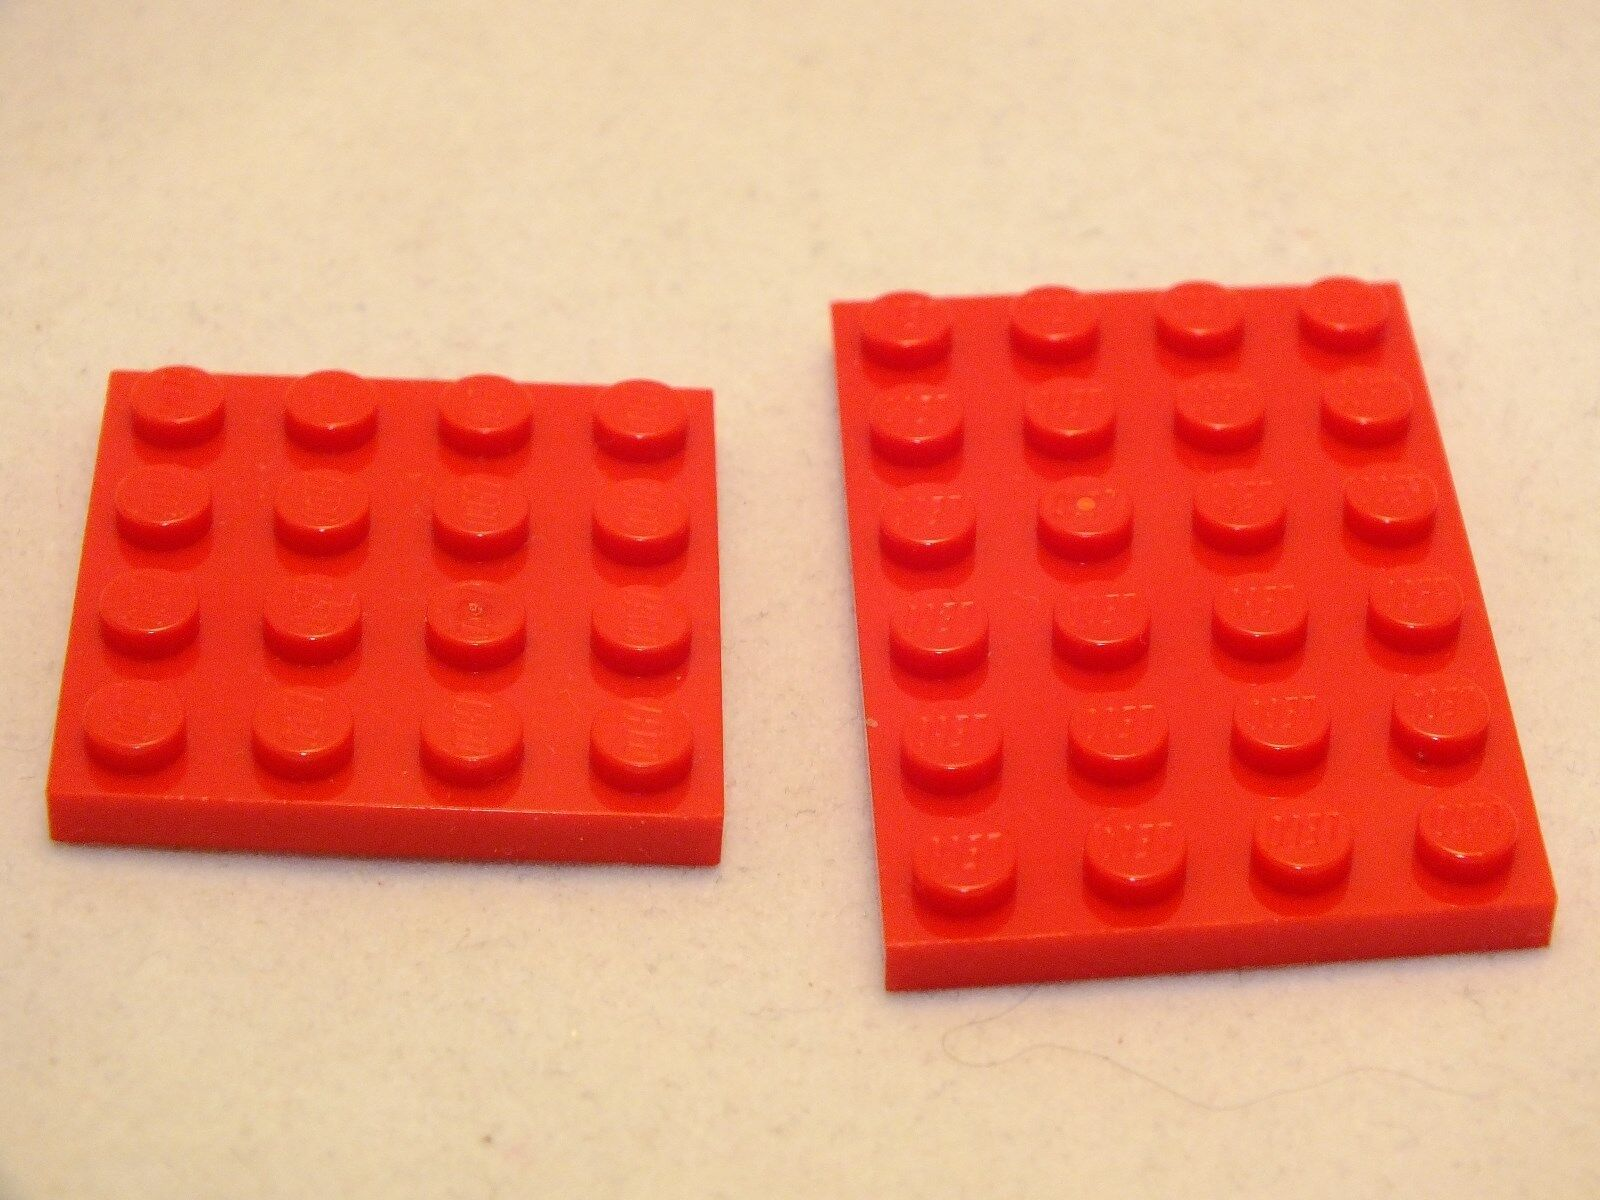 LEGO 4X4,4X6 rot FLAT PLATES BRAND NEW NEVER USED 220 PIECES